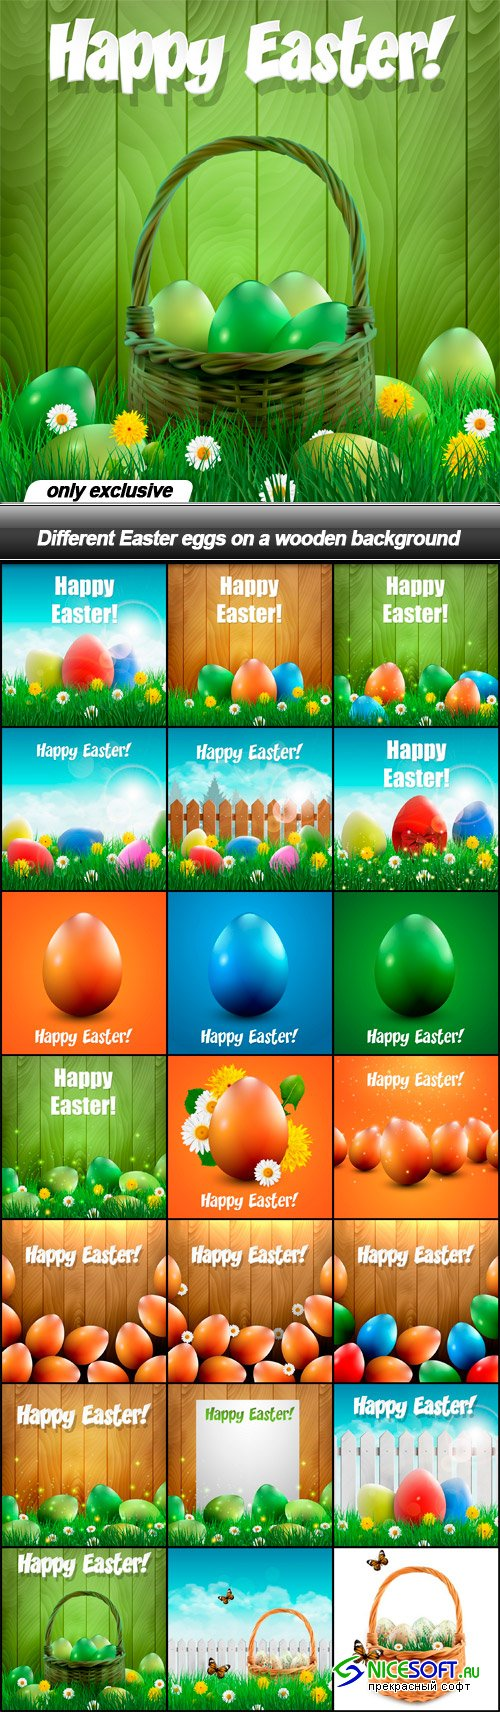 Different Easter eggs on a wooden background